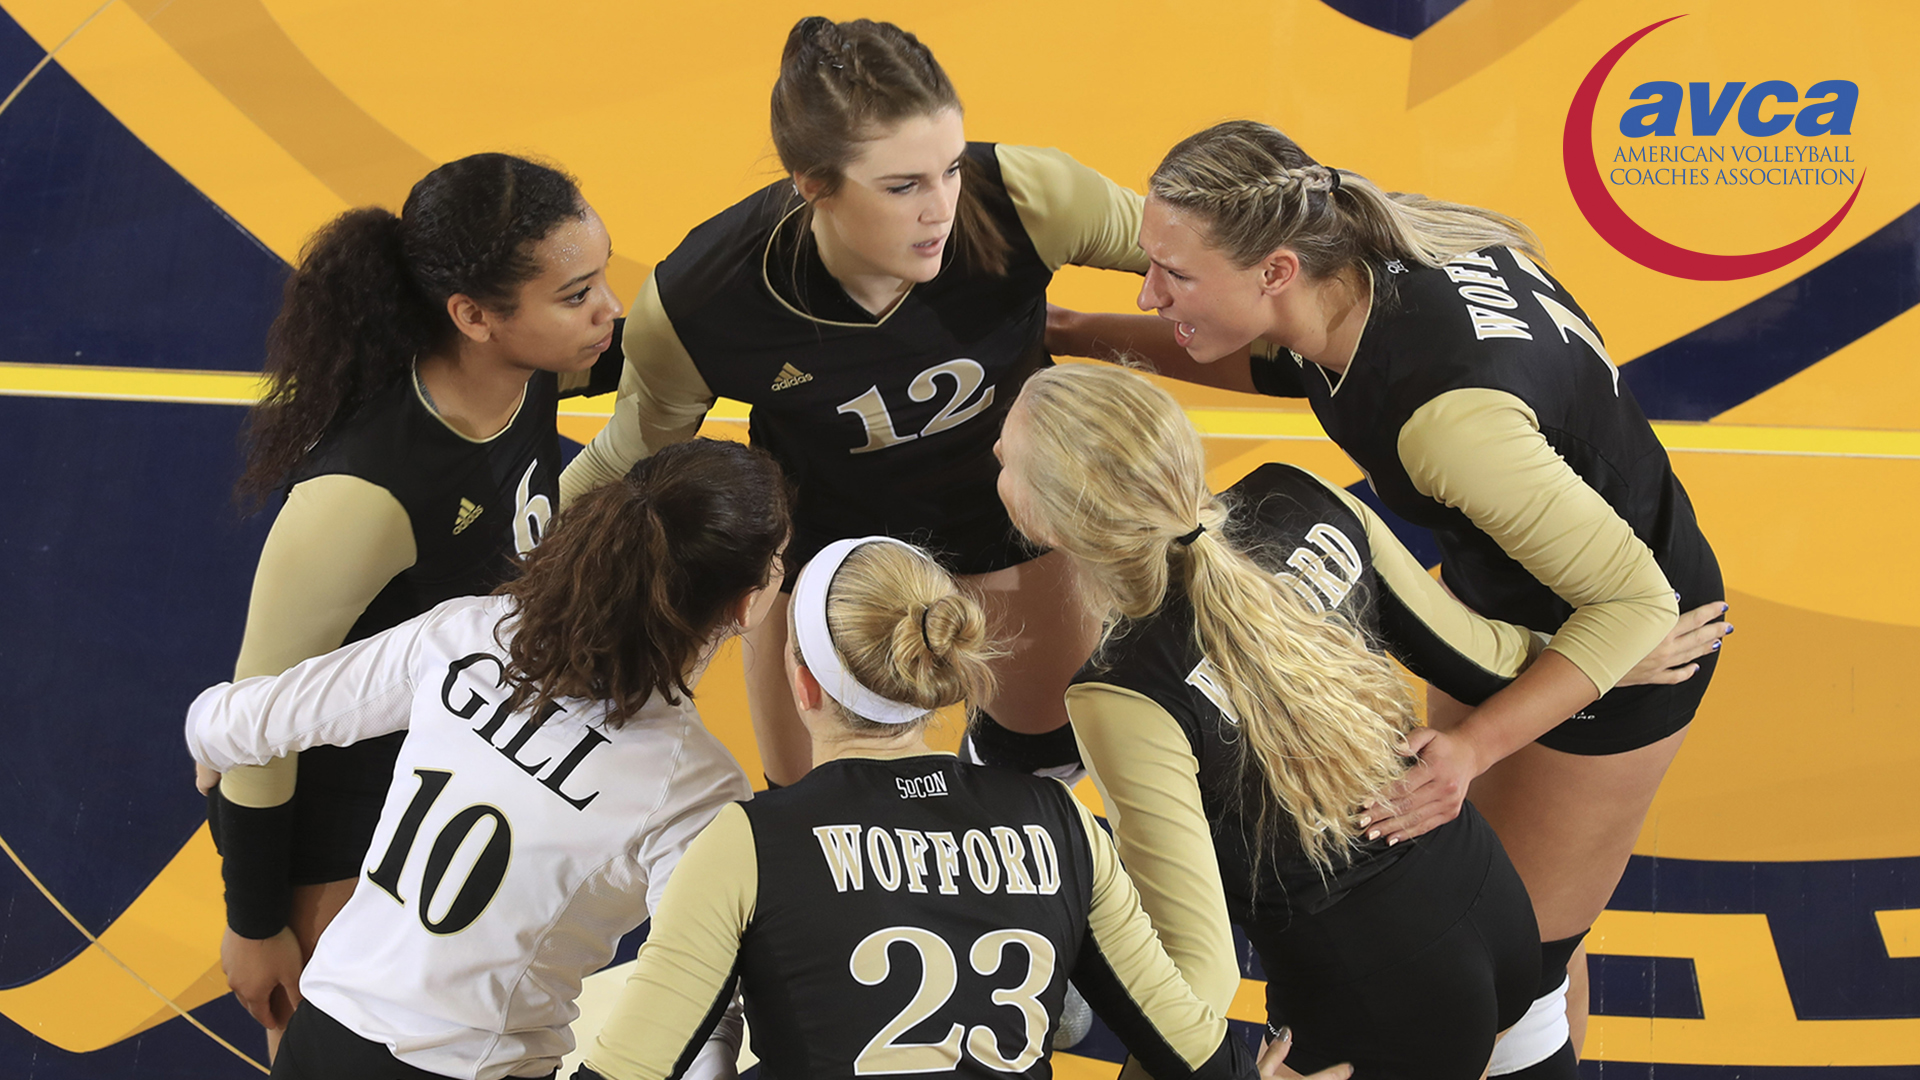 Wofford volleyball receives AVCA Team Academic Award - Wofford